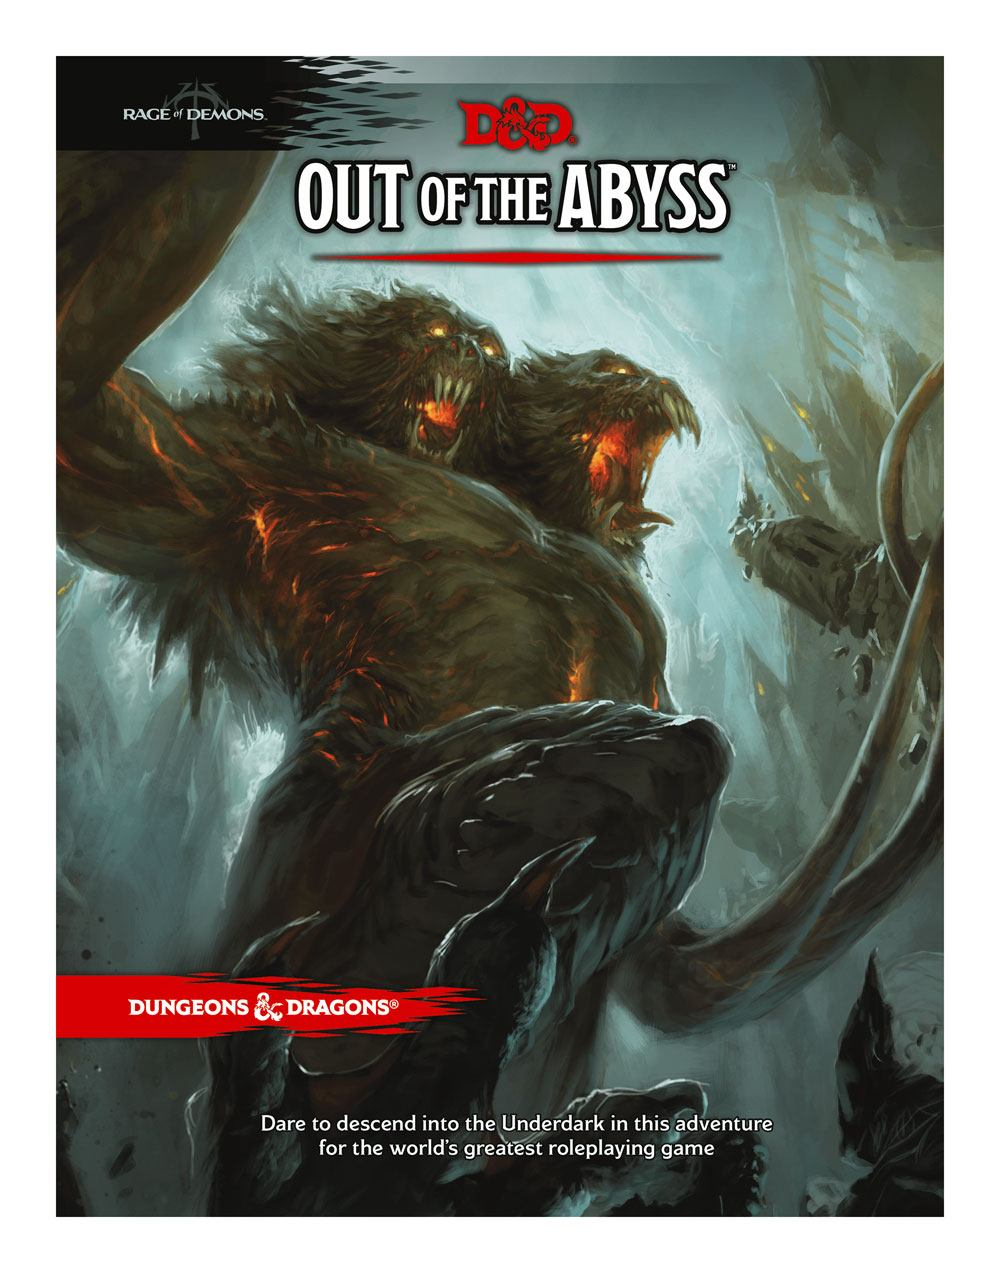 Out of the Abyss | Comic Shop Crawley